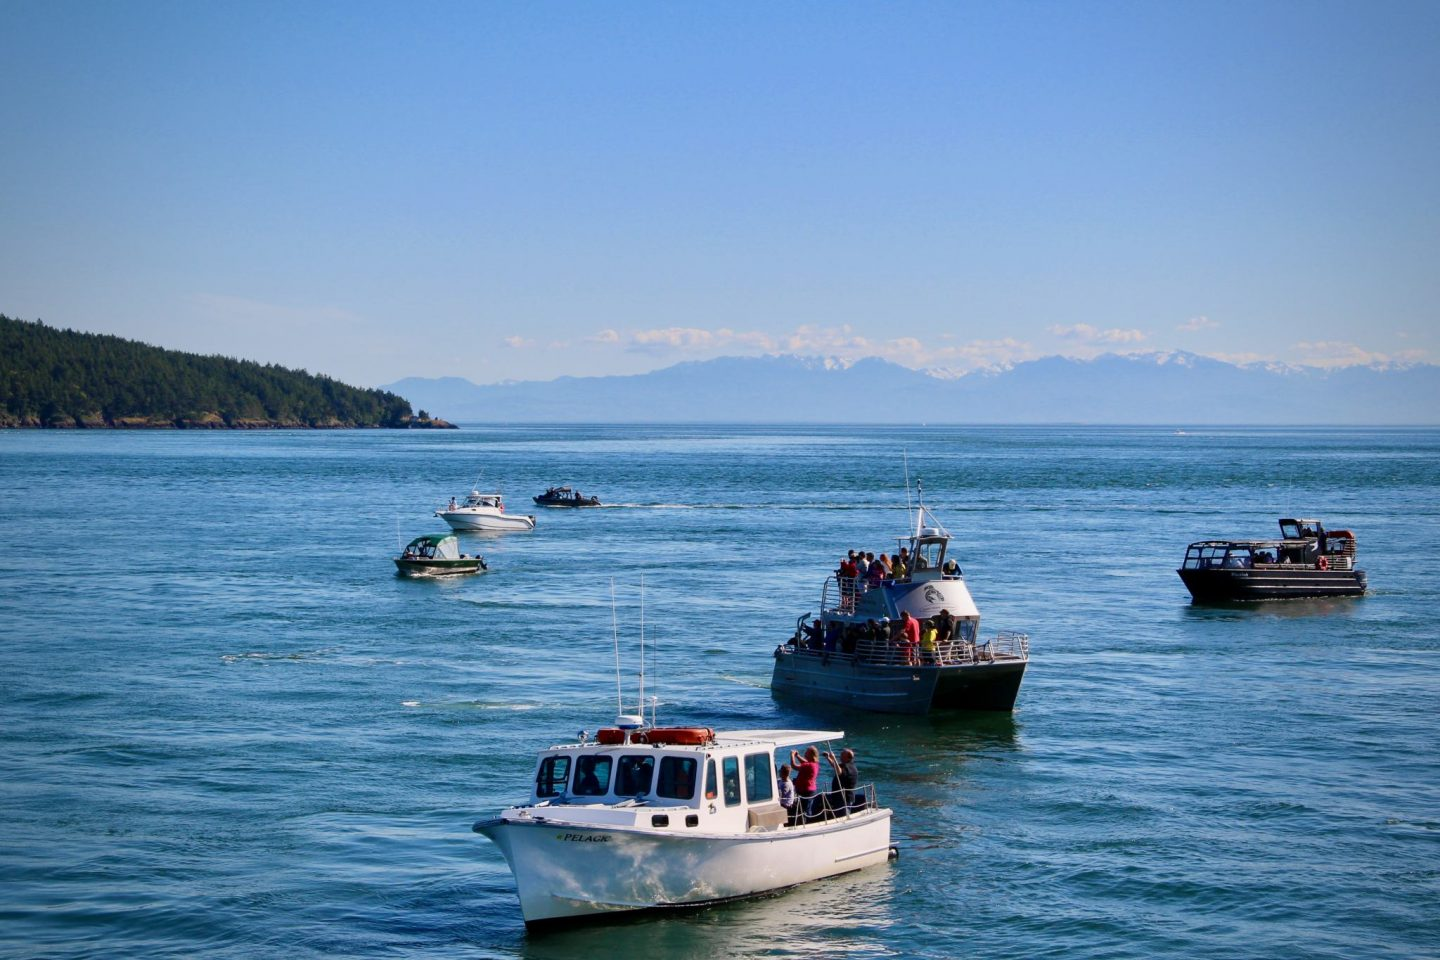 Whale watching boats near San Juan Islands, Washington | The Spectacular Adventurer